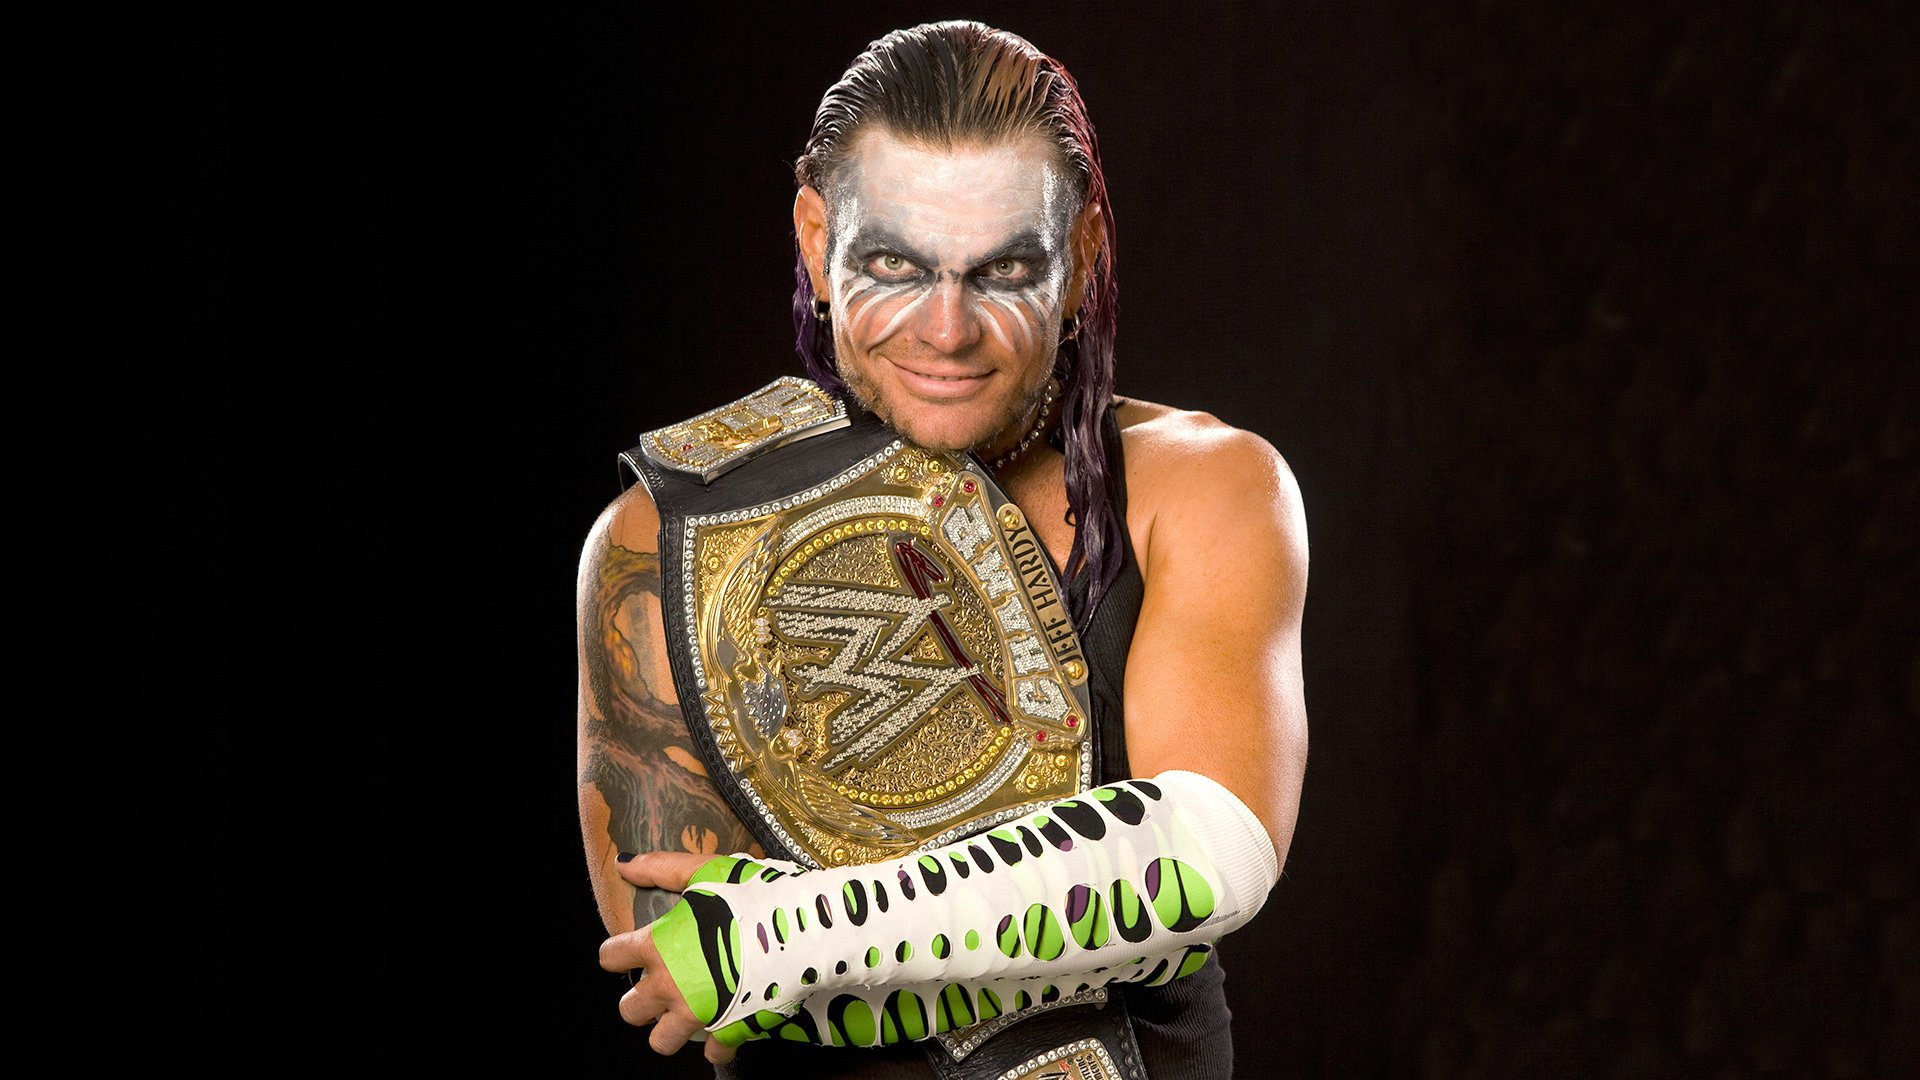 WWE Star Jeff Hardy Arrested for Driving While Impaired in North Carolina